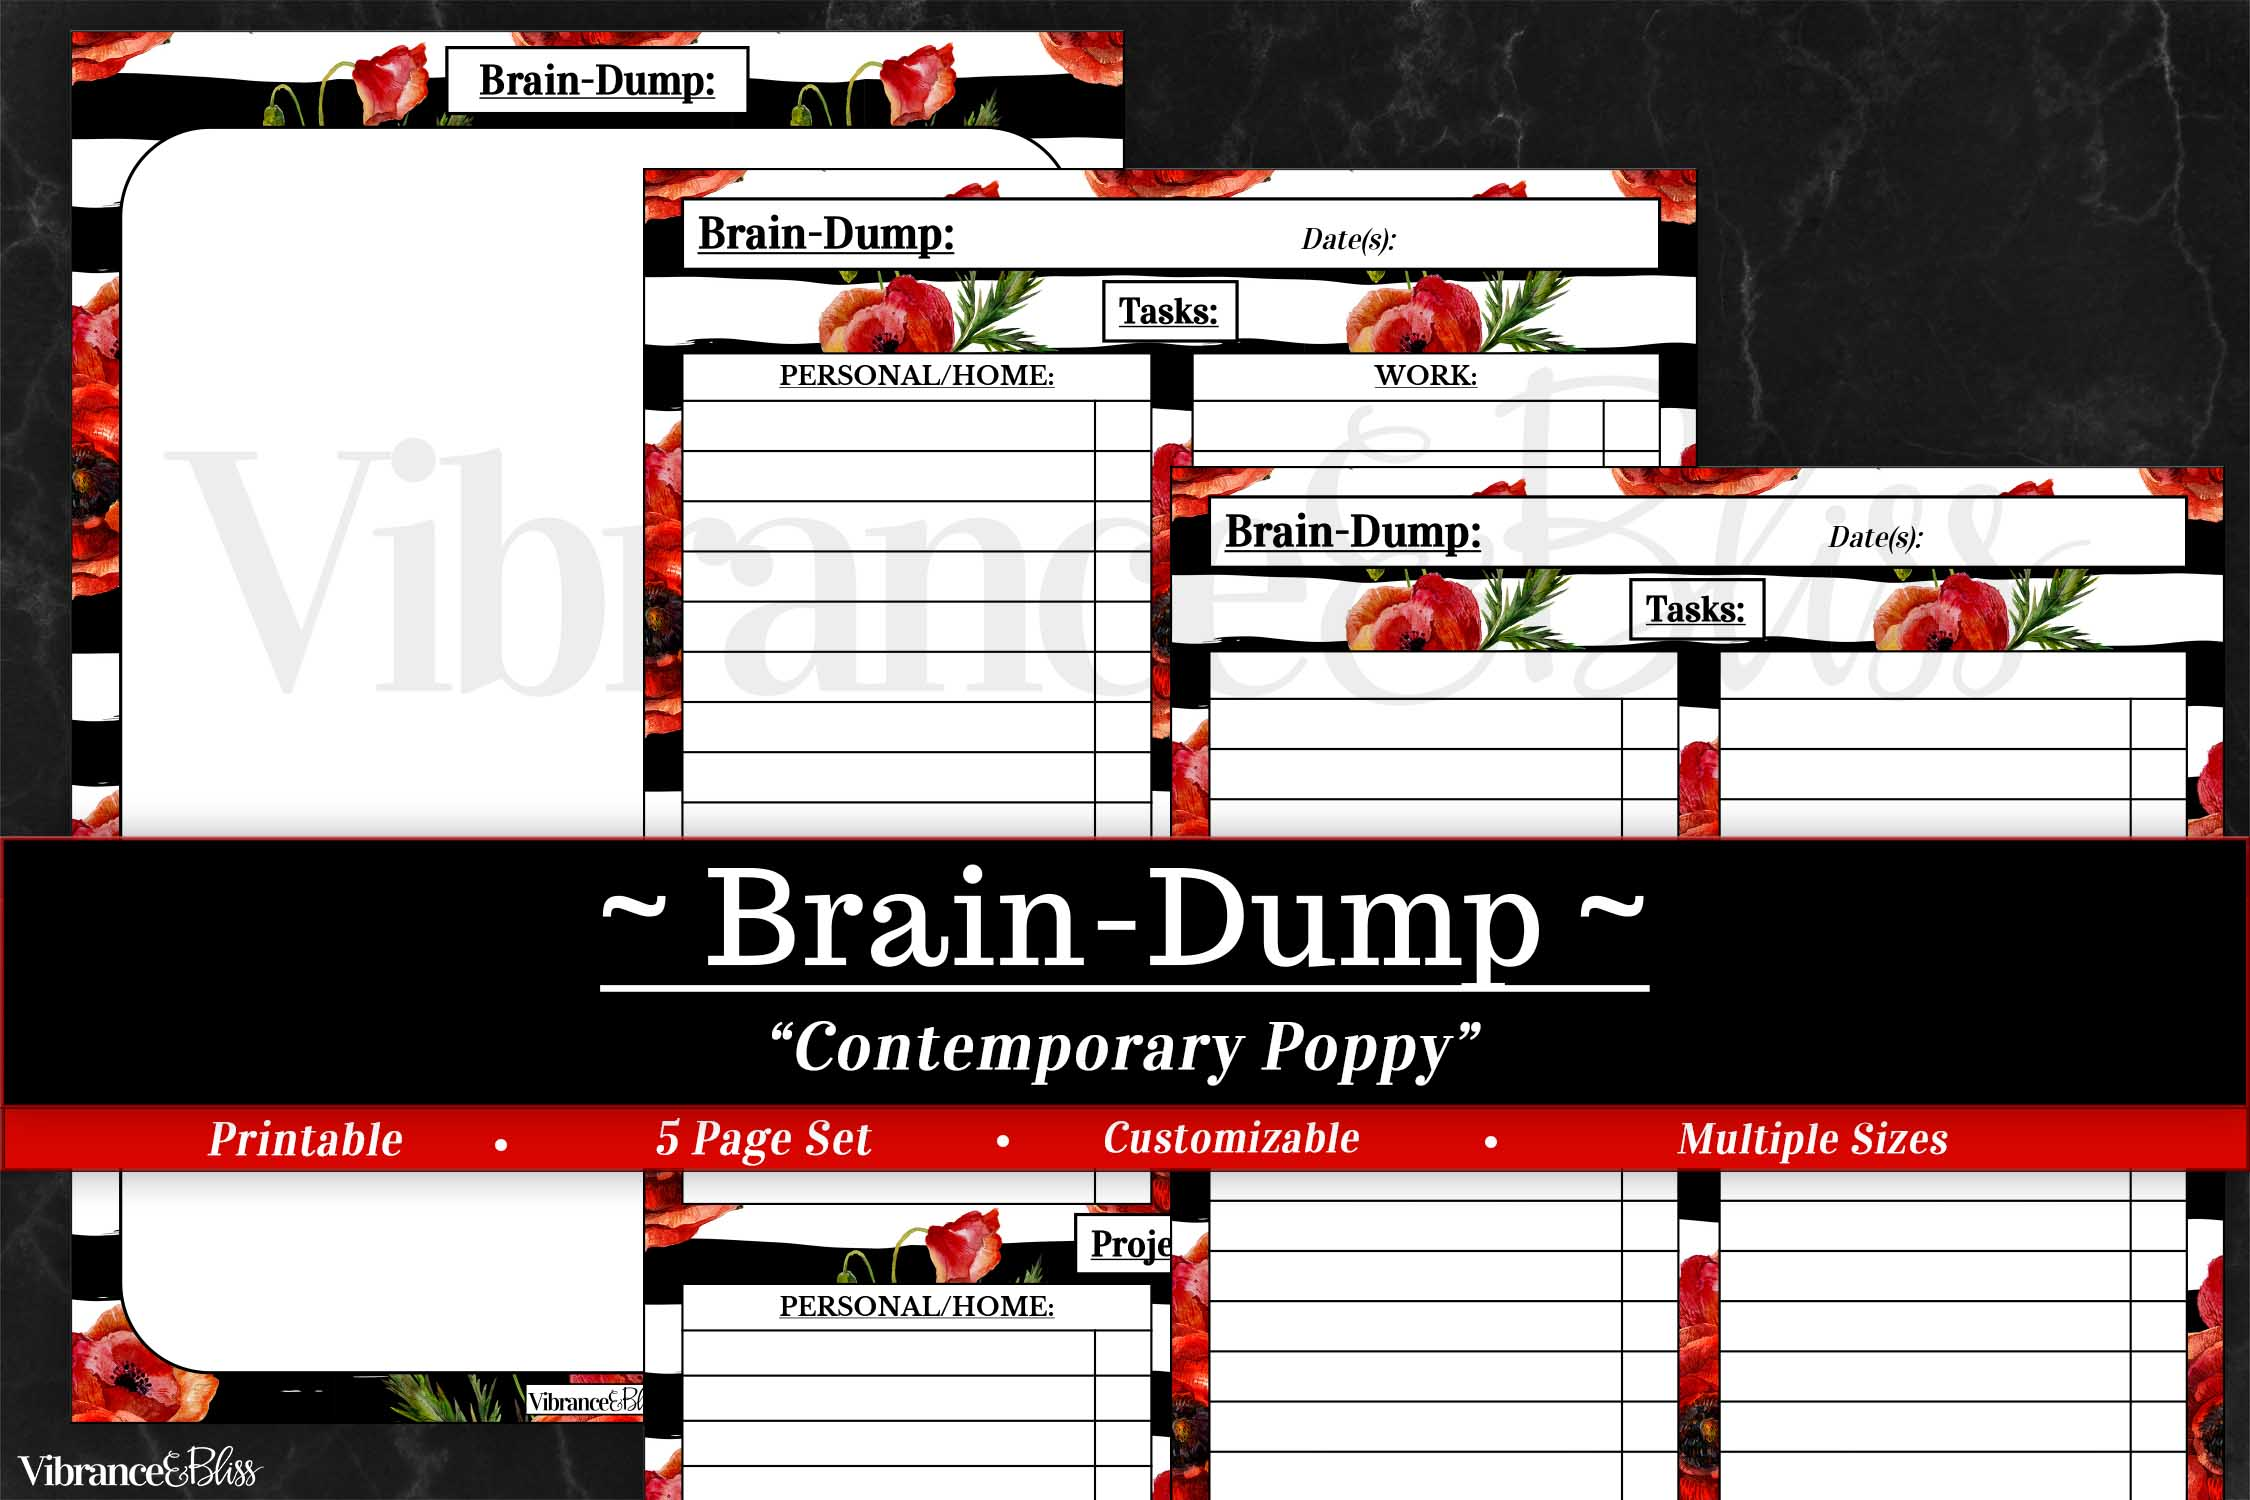 Overwhelmed? Too much in your head? Get it out! With this unique 3-page PDF Printable, you can stop stressing and get organized. Wishing for a stress-free world? Get your plans out on paper so you can process and produce! Includes 3 separate formats to better fit your needs. For more information on Brain-Dumping, be sure to check out this post! Collection: Contemporary Poppy Size: FULL (8.5″ x 11″) & HALF-Sheet (5.5″ x 8.5″)